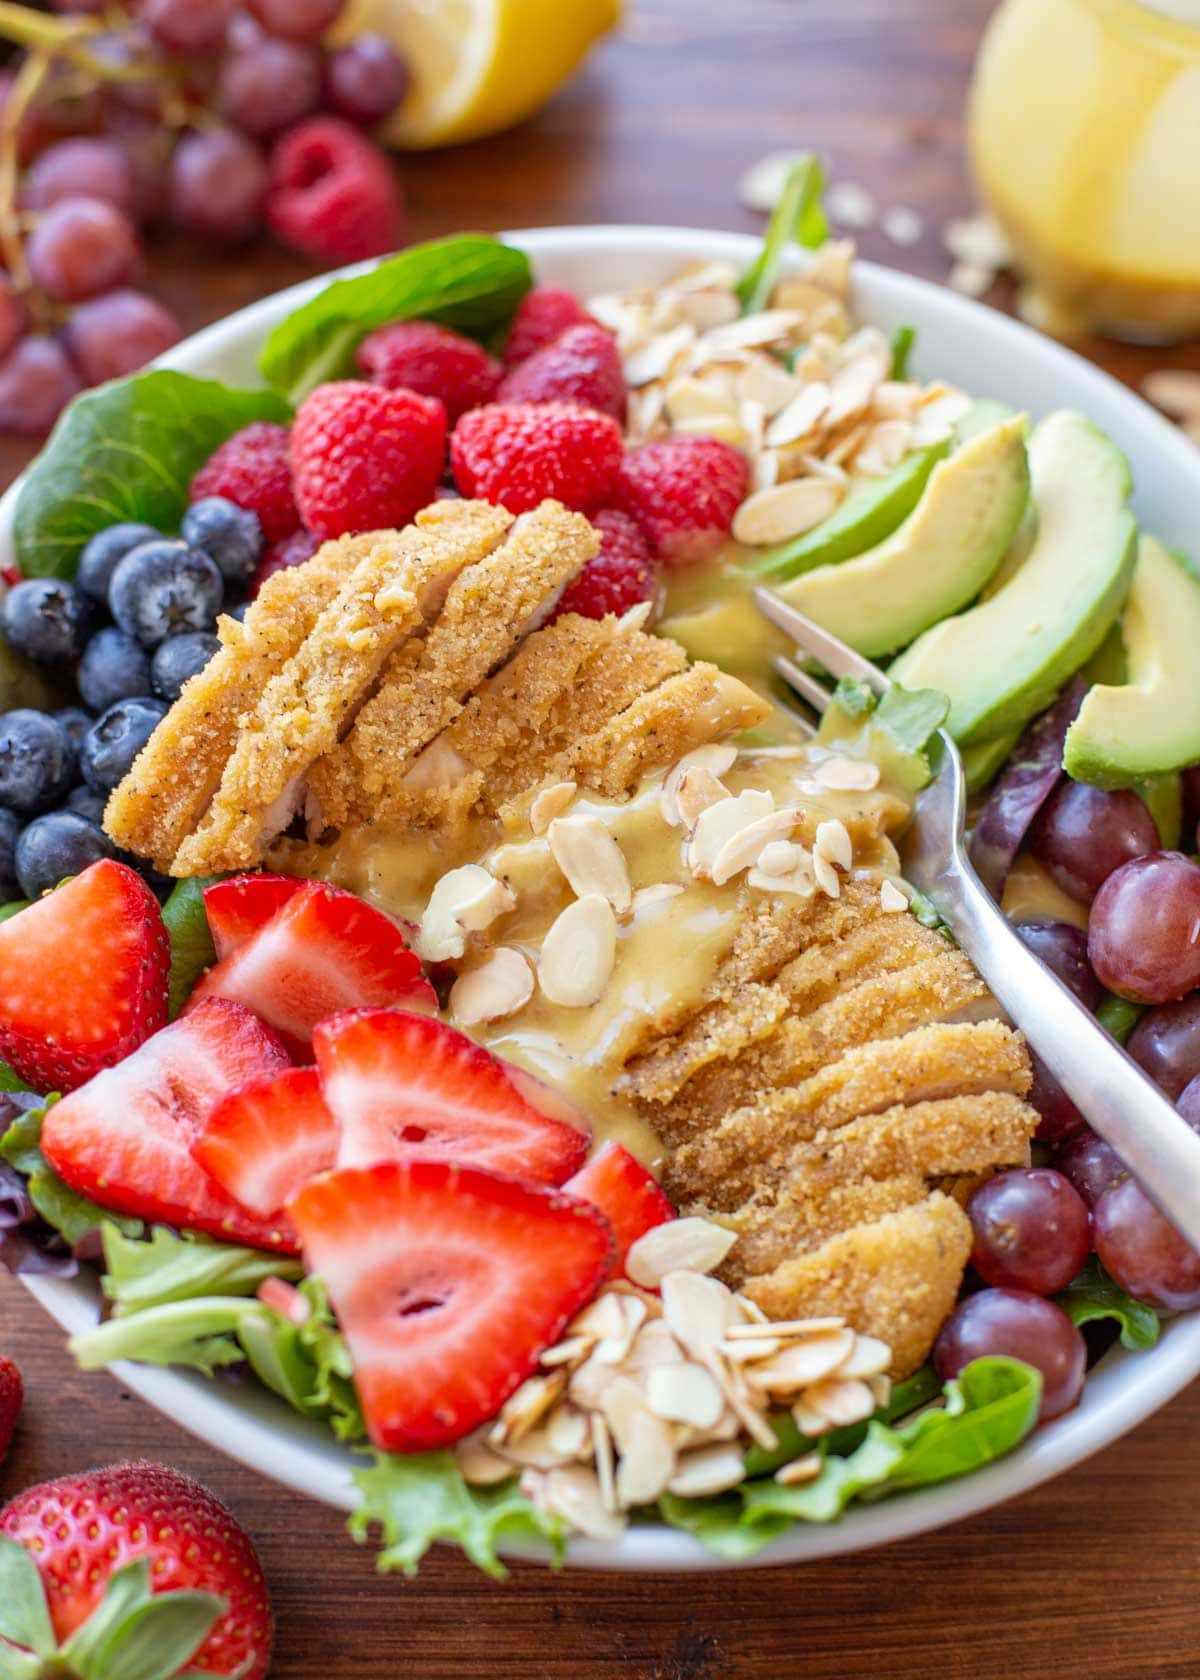 Honey and Mustard chicken salad with berries and nuts